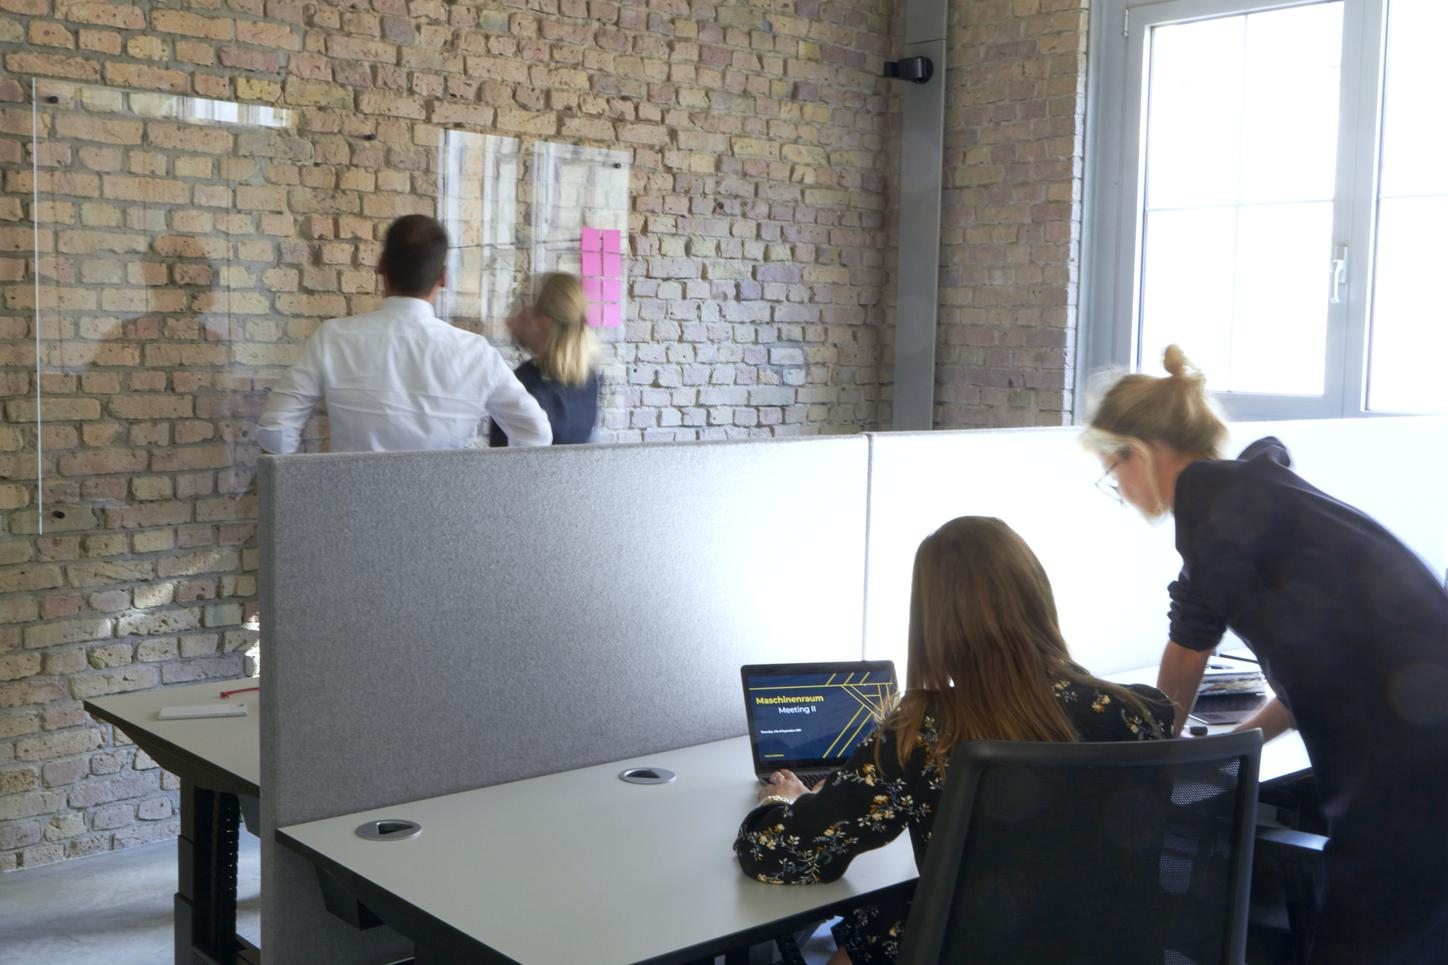 The image shows discussing people in a room.